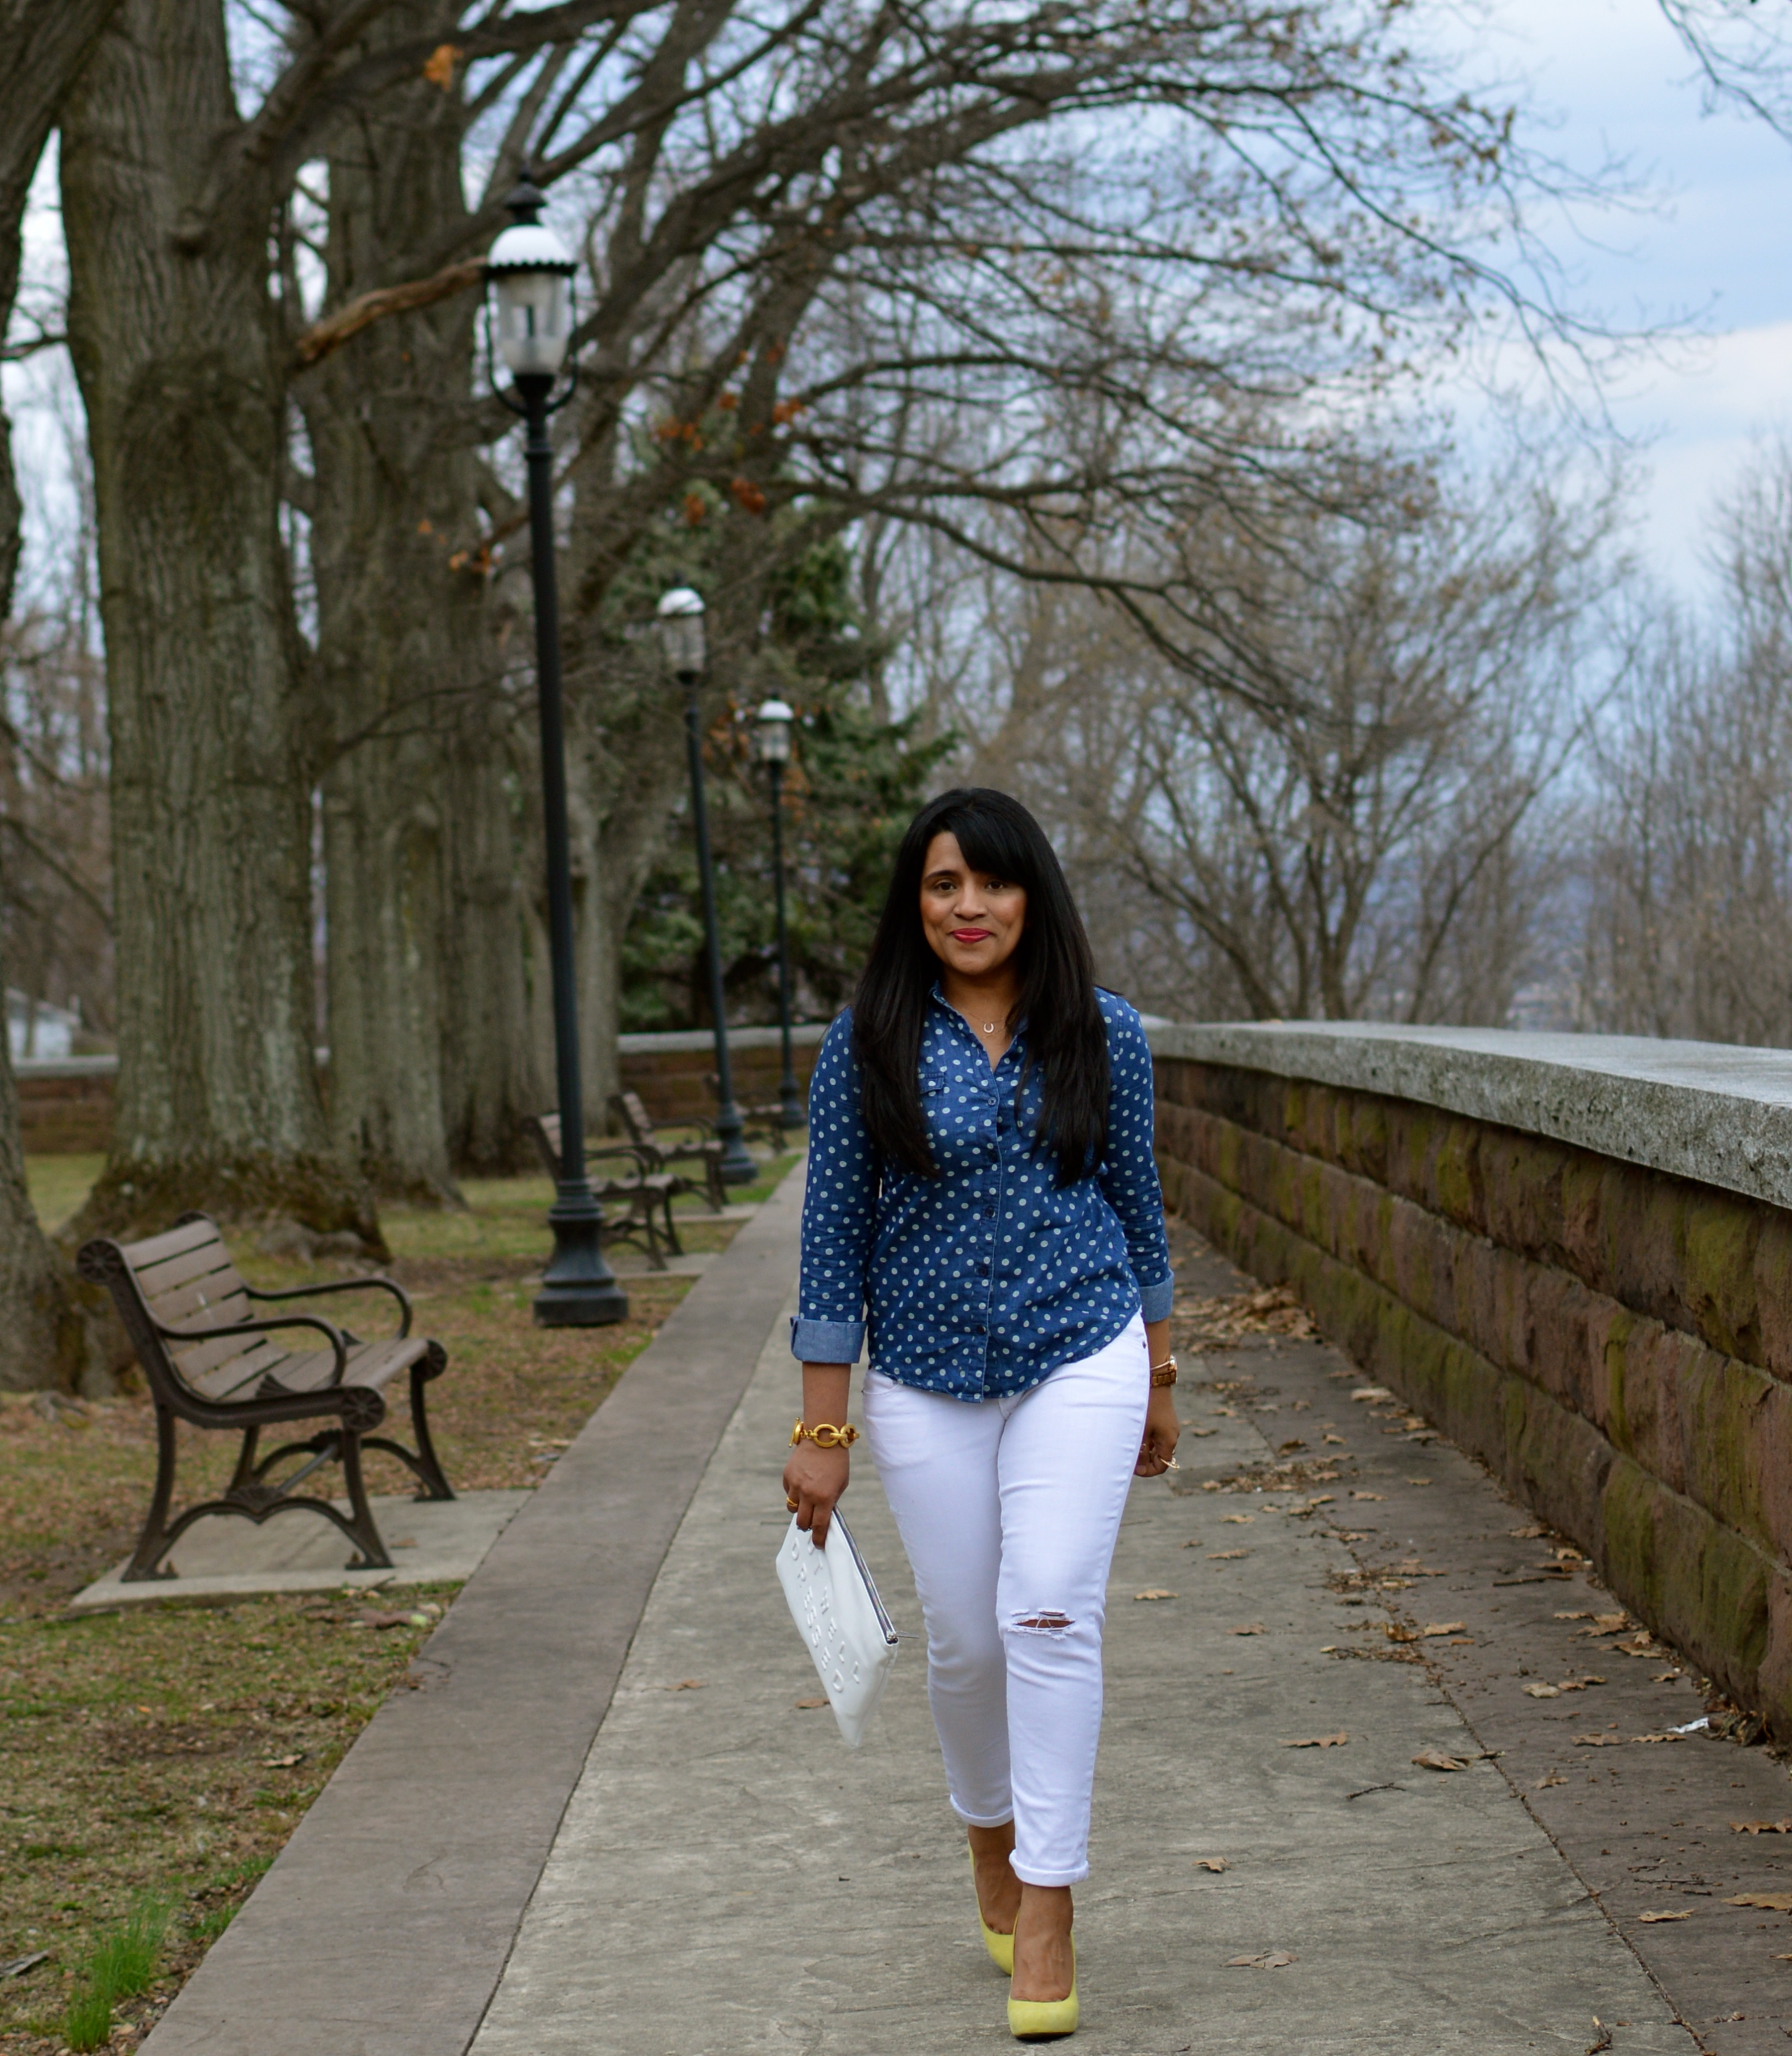 Chambray & White Outfit